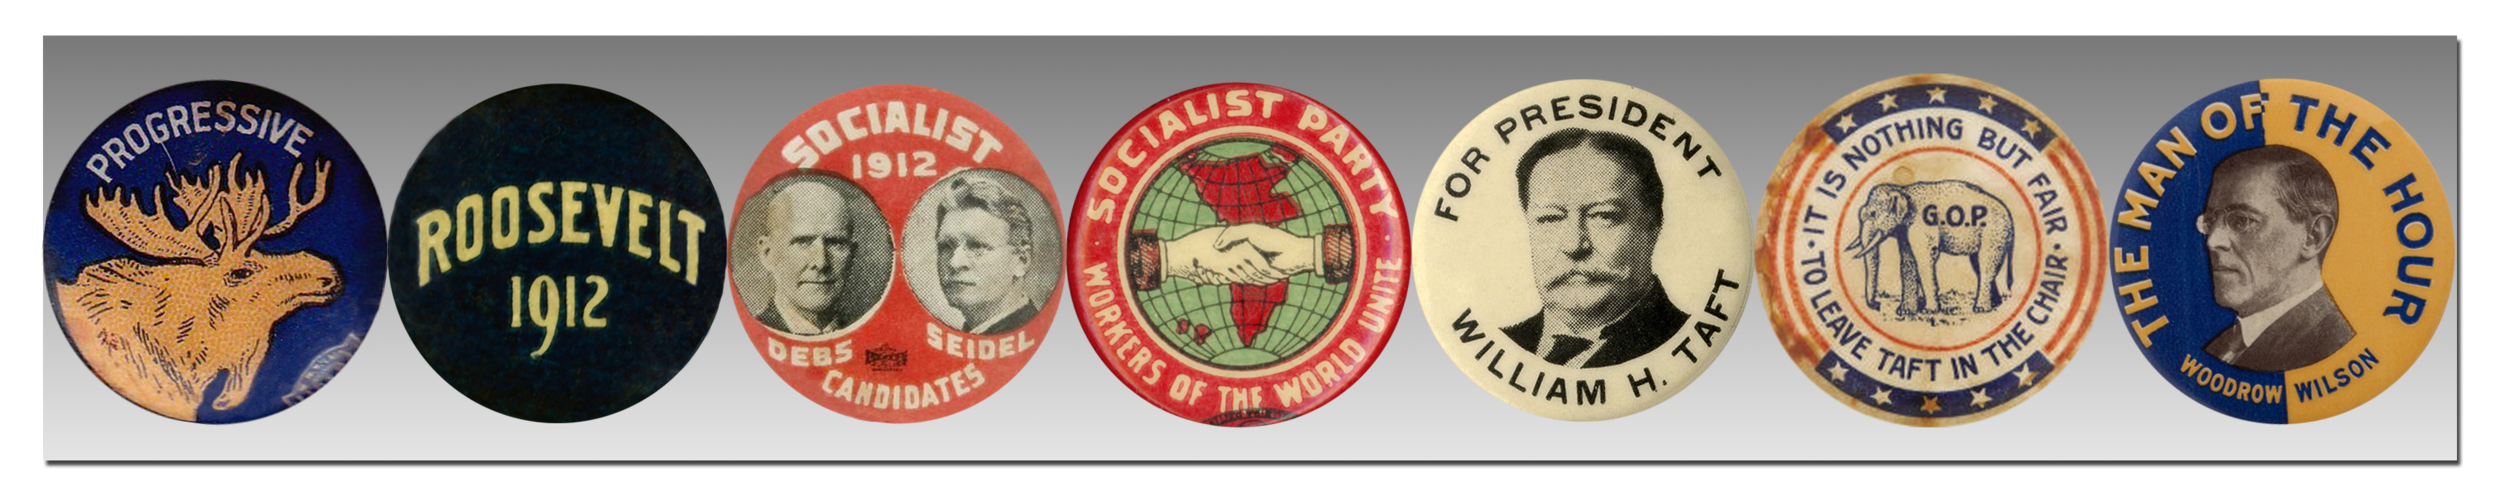 Six political buttons for Progressive Bullmoose, Socialist, Republican, and Democratic parties